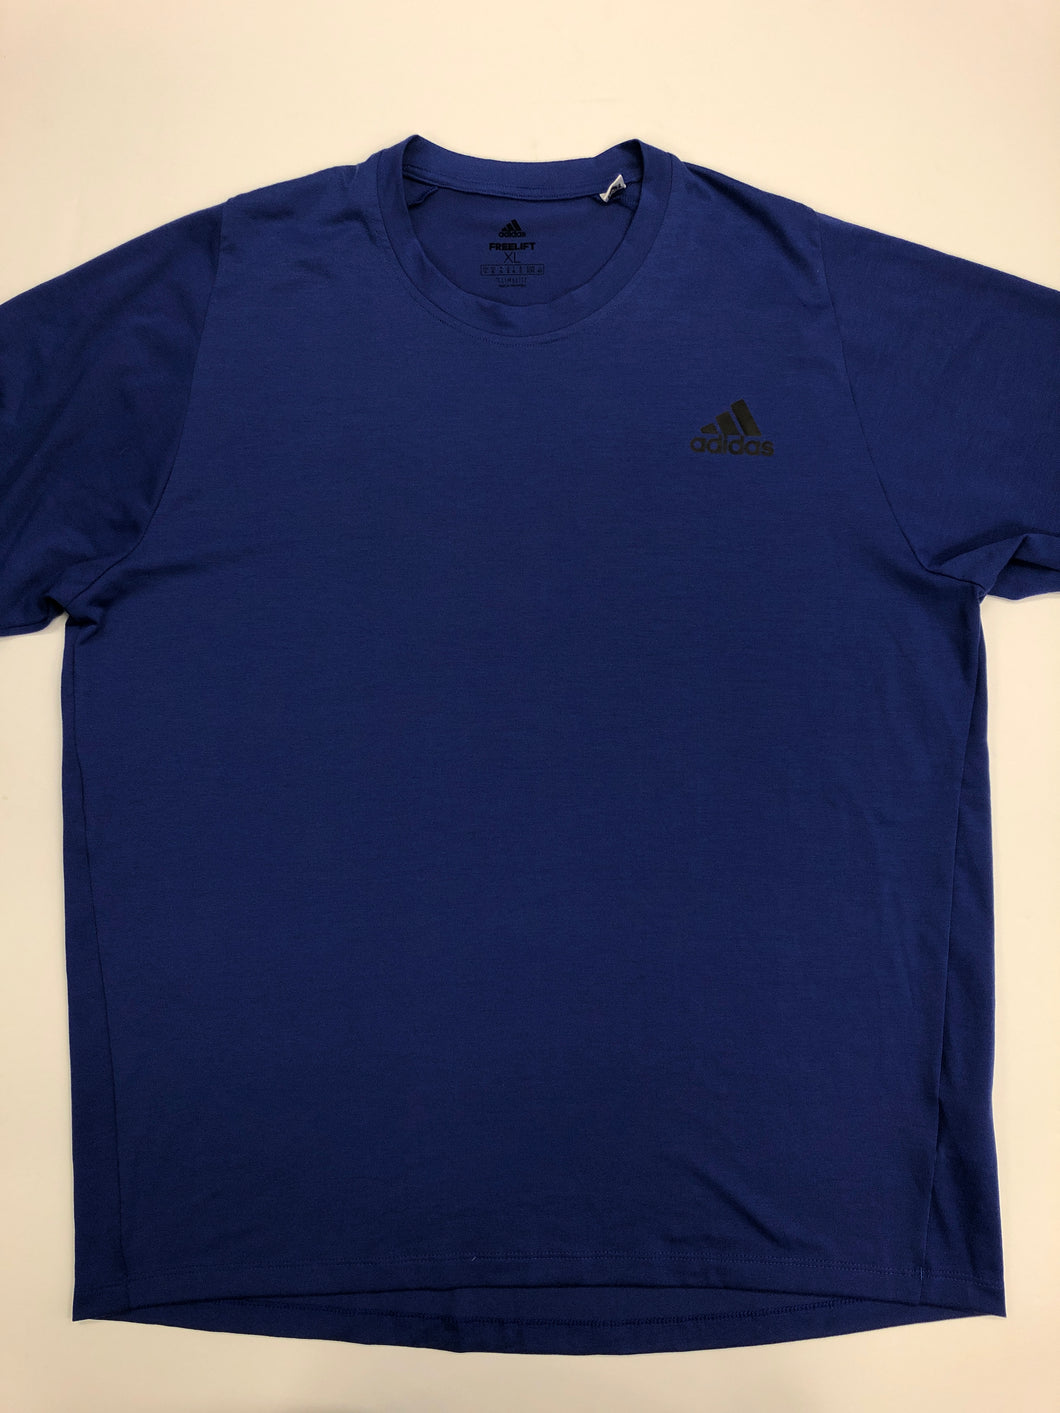 Adidas Mens Athletic Top Size Extra Large